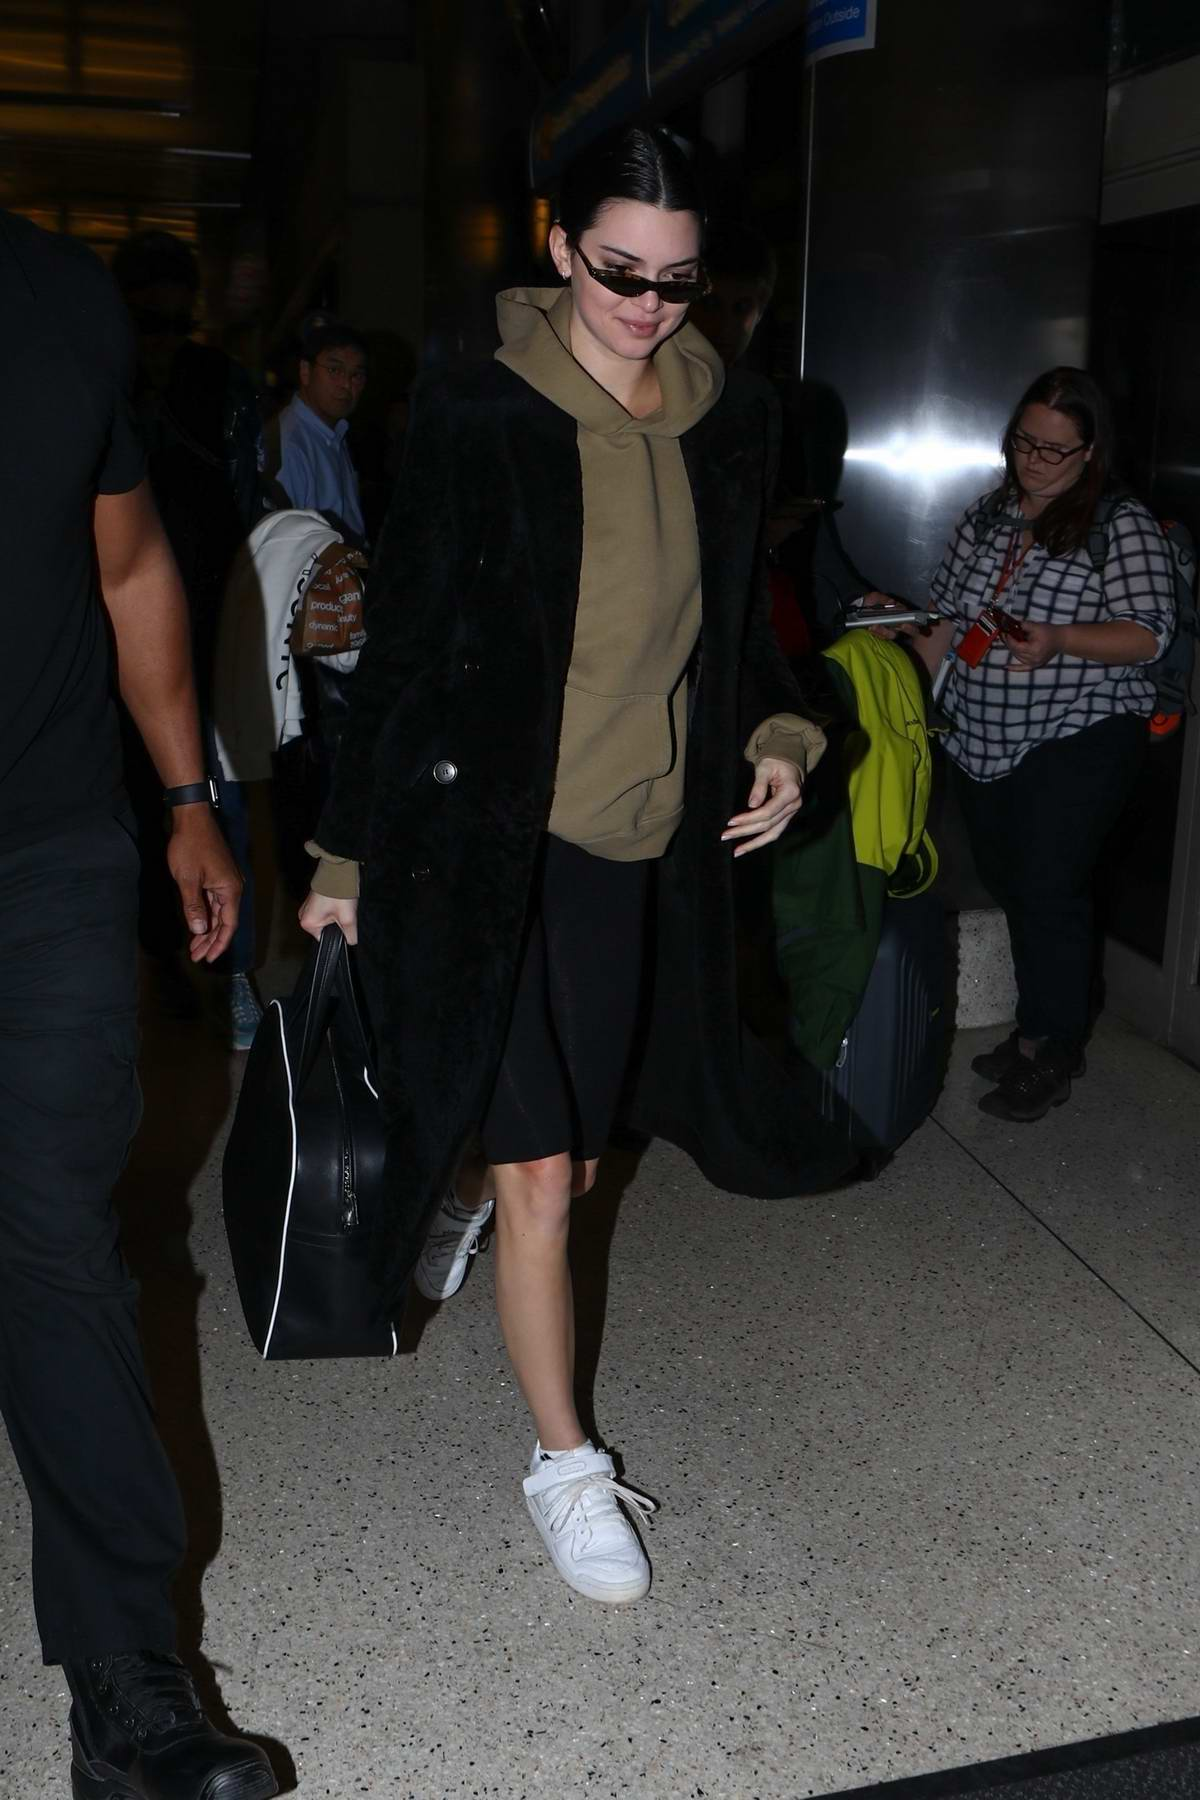 Kendall Jenner arrives at LAX airport to catch a flight to Paris